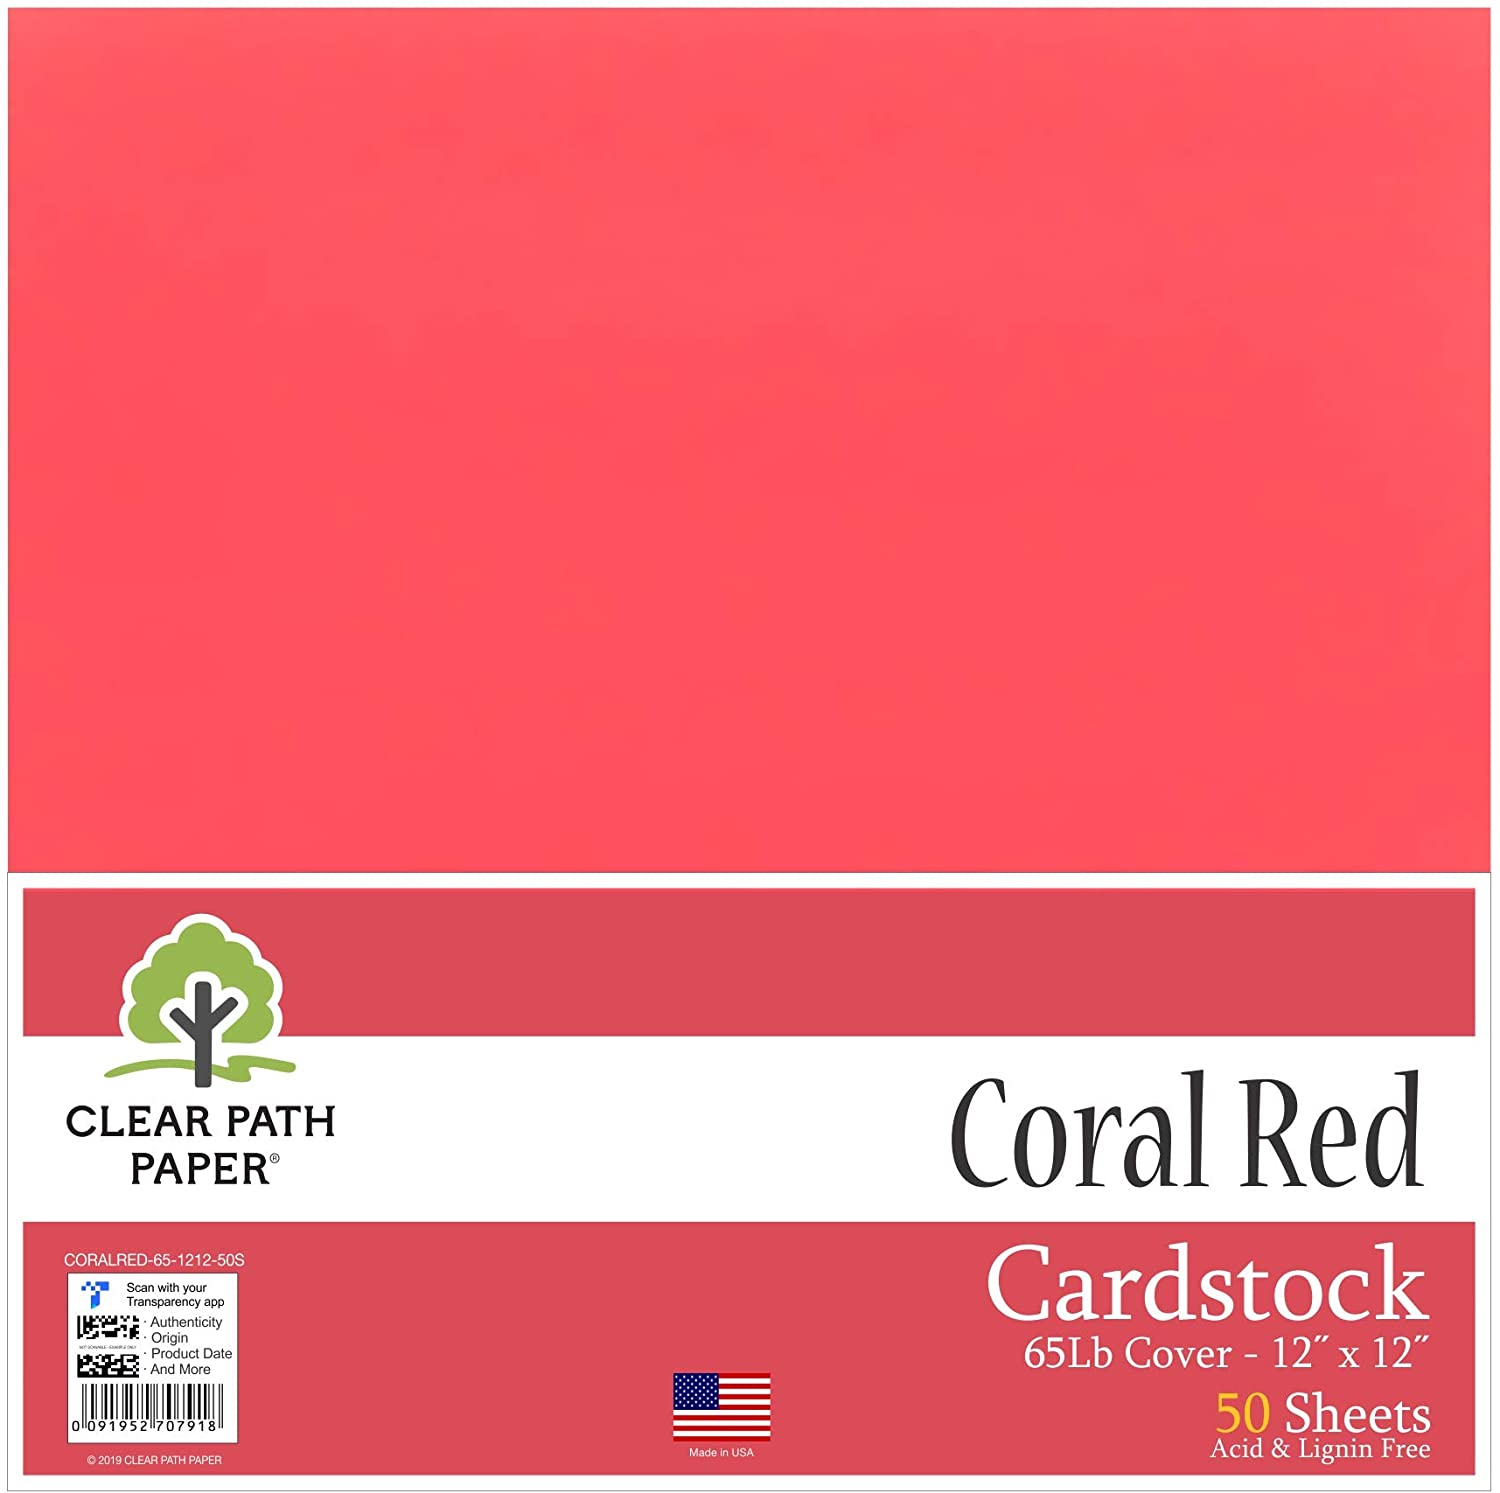 Coral Red Cardstock - 12 x 12 inch - 65Lb Cover - 50 Sheets - Clear Path Paper